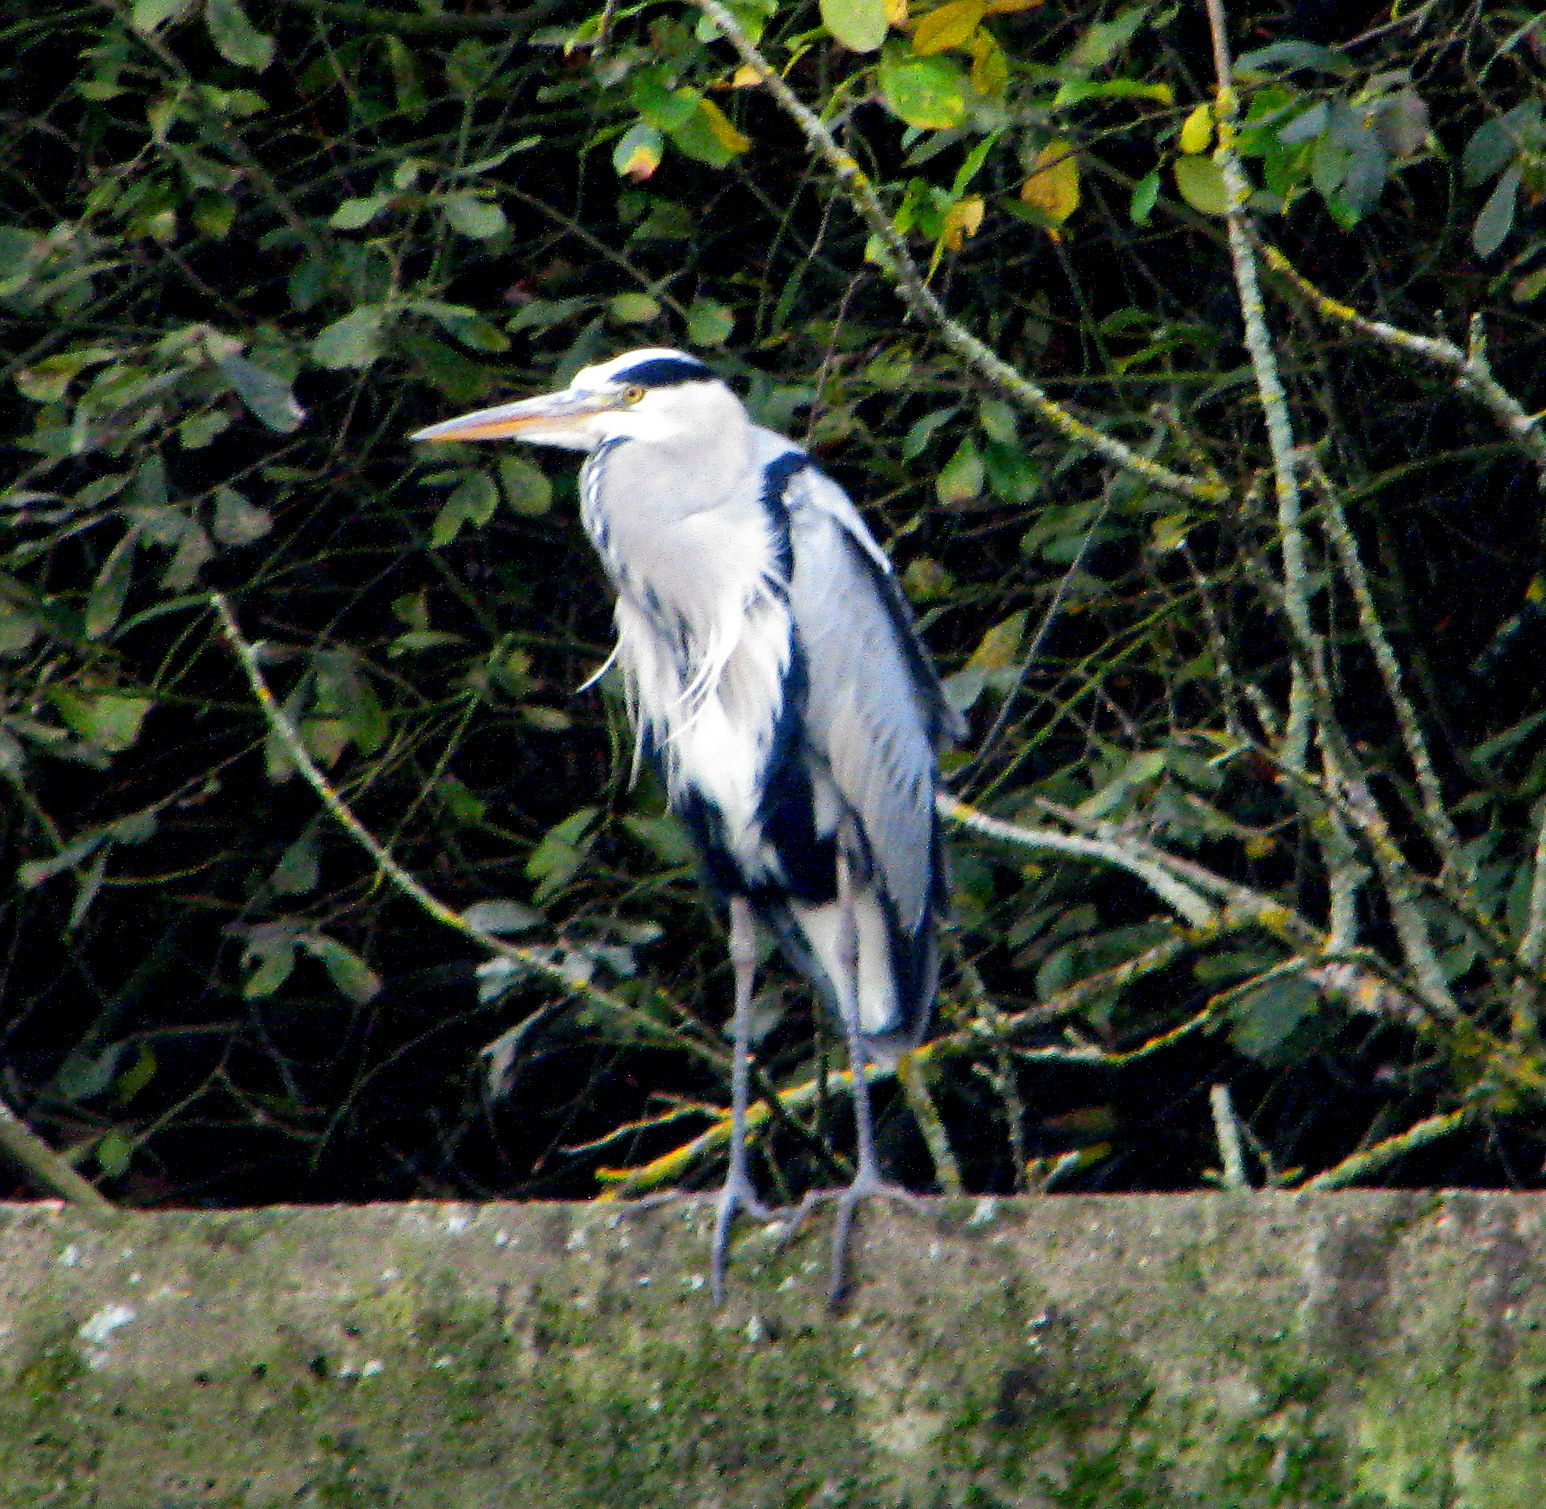 Neck tucked in, this Grey Heron waits for lunch.